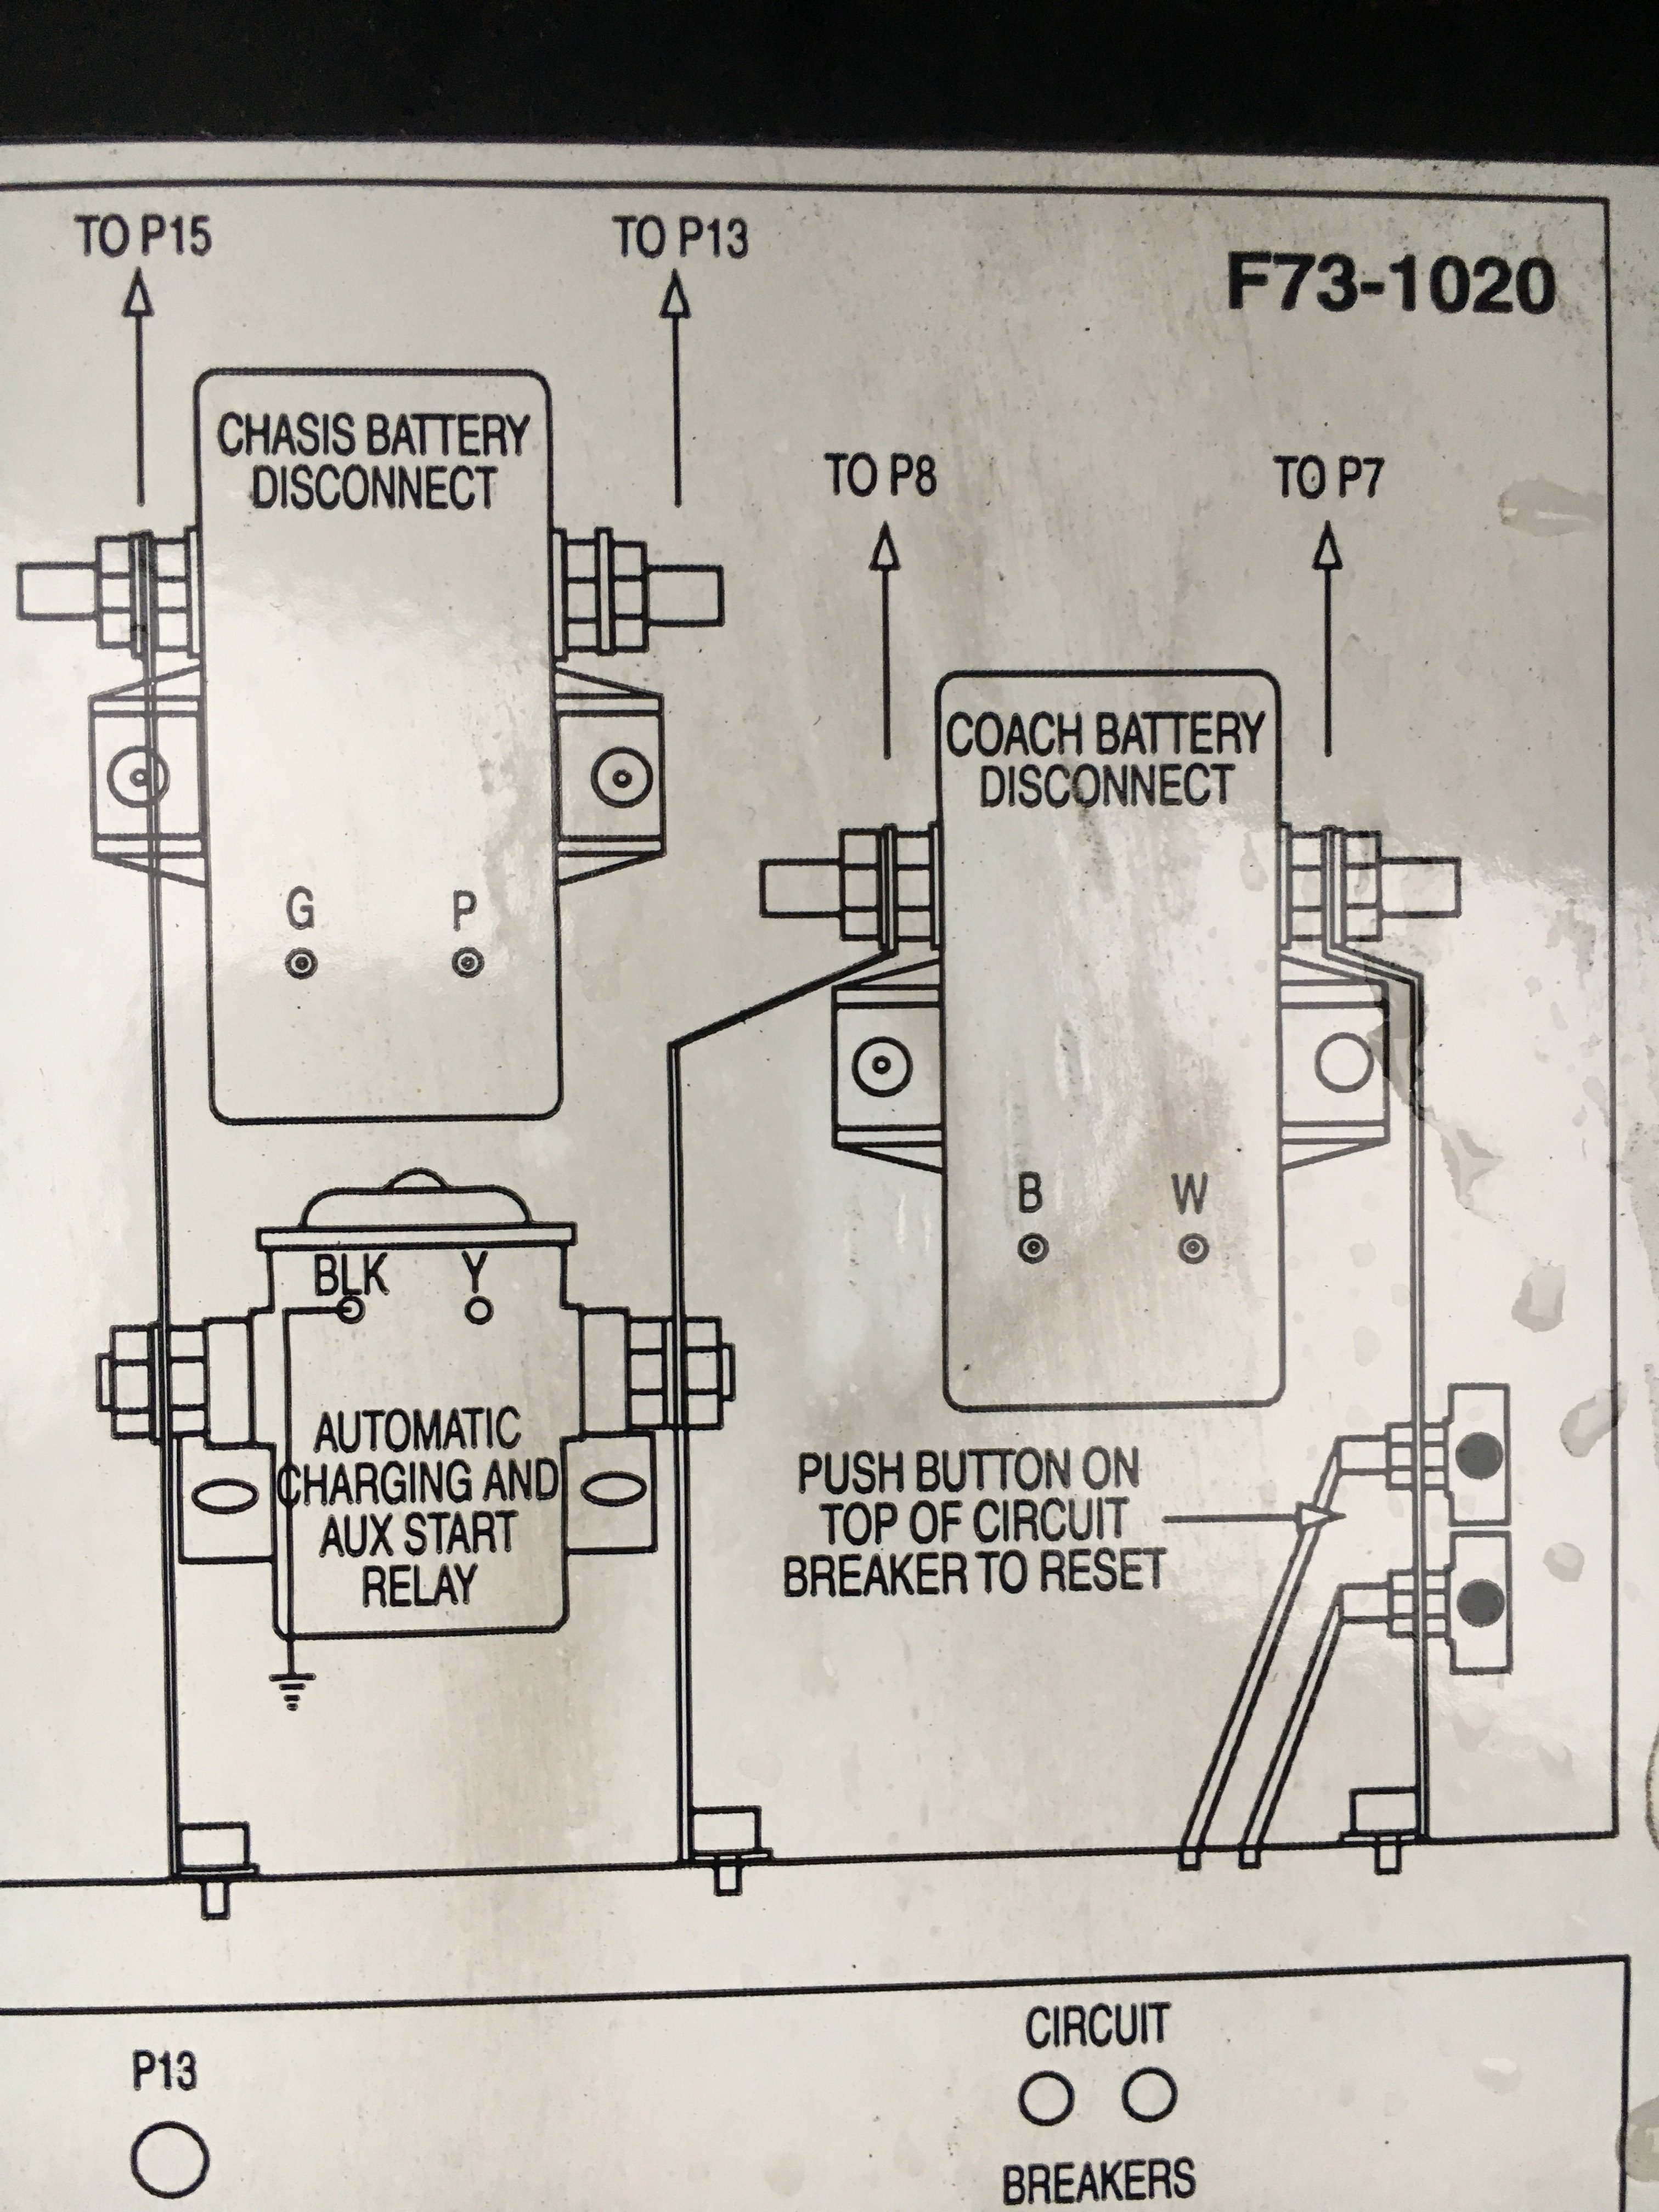 I Have A 2003 Pace Arrow The Switch For Engine Battery And. Wiring. Battery Doctor Disconnect Wiring Diagram At Scoala.co